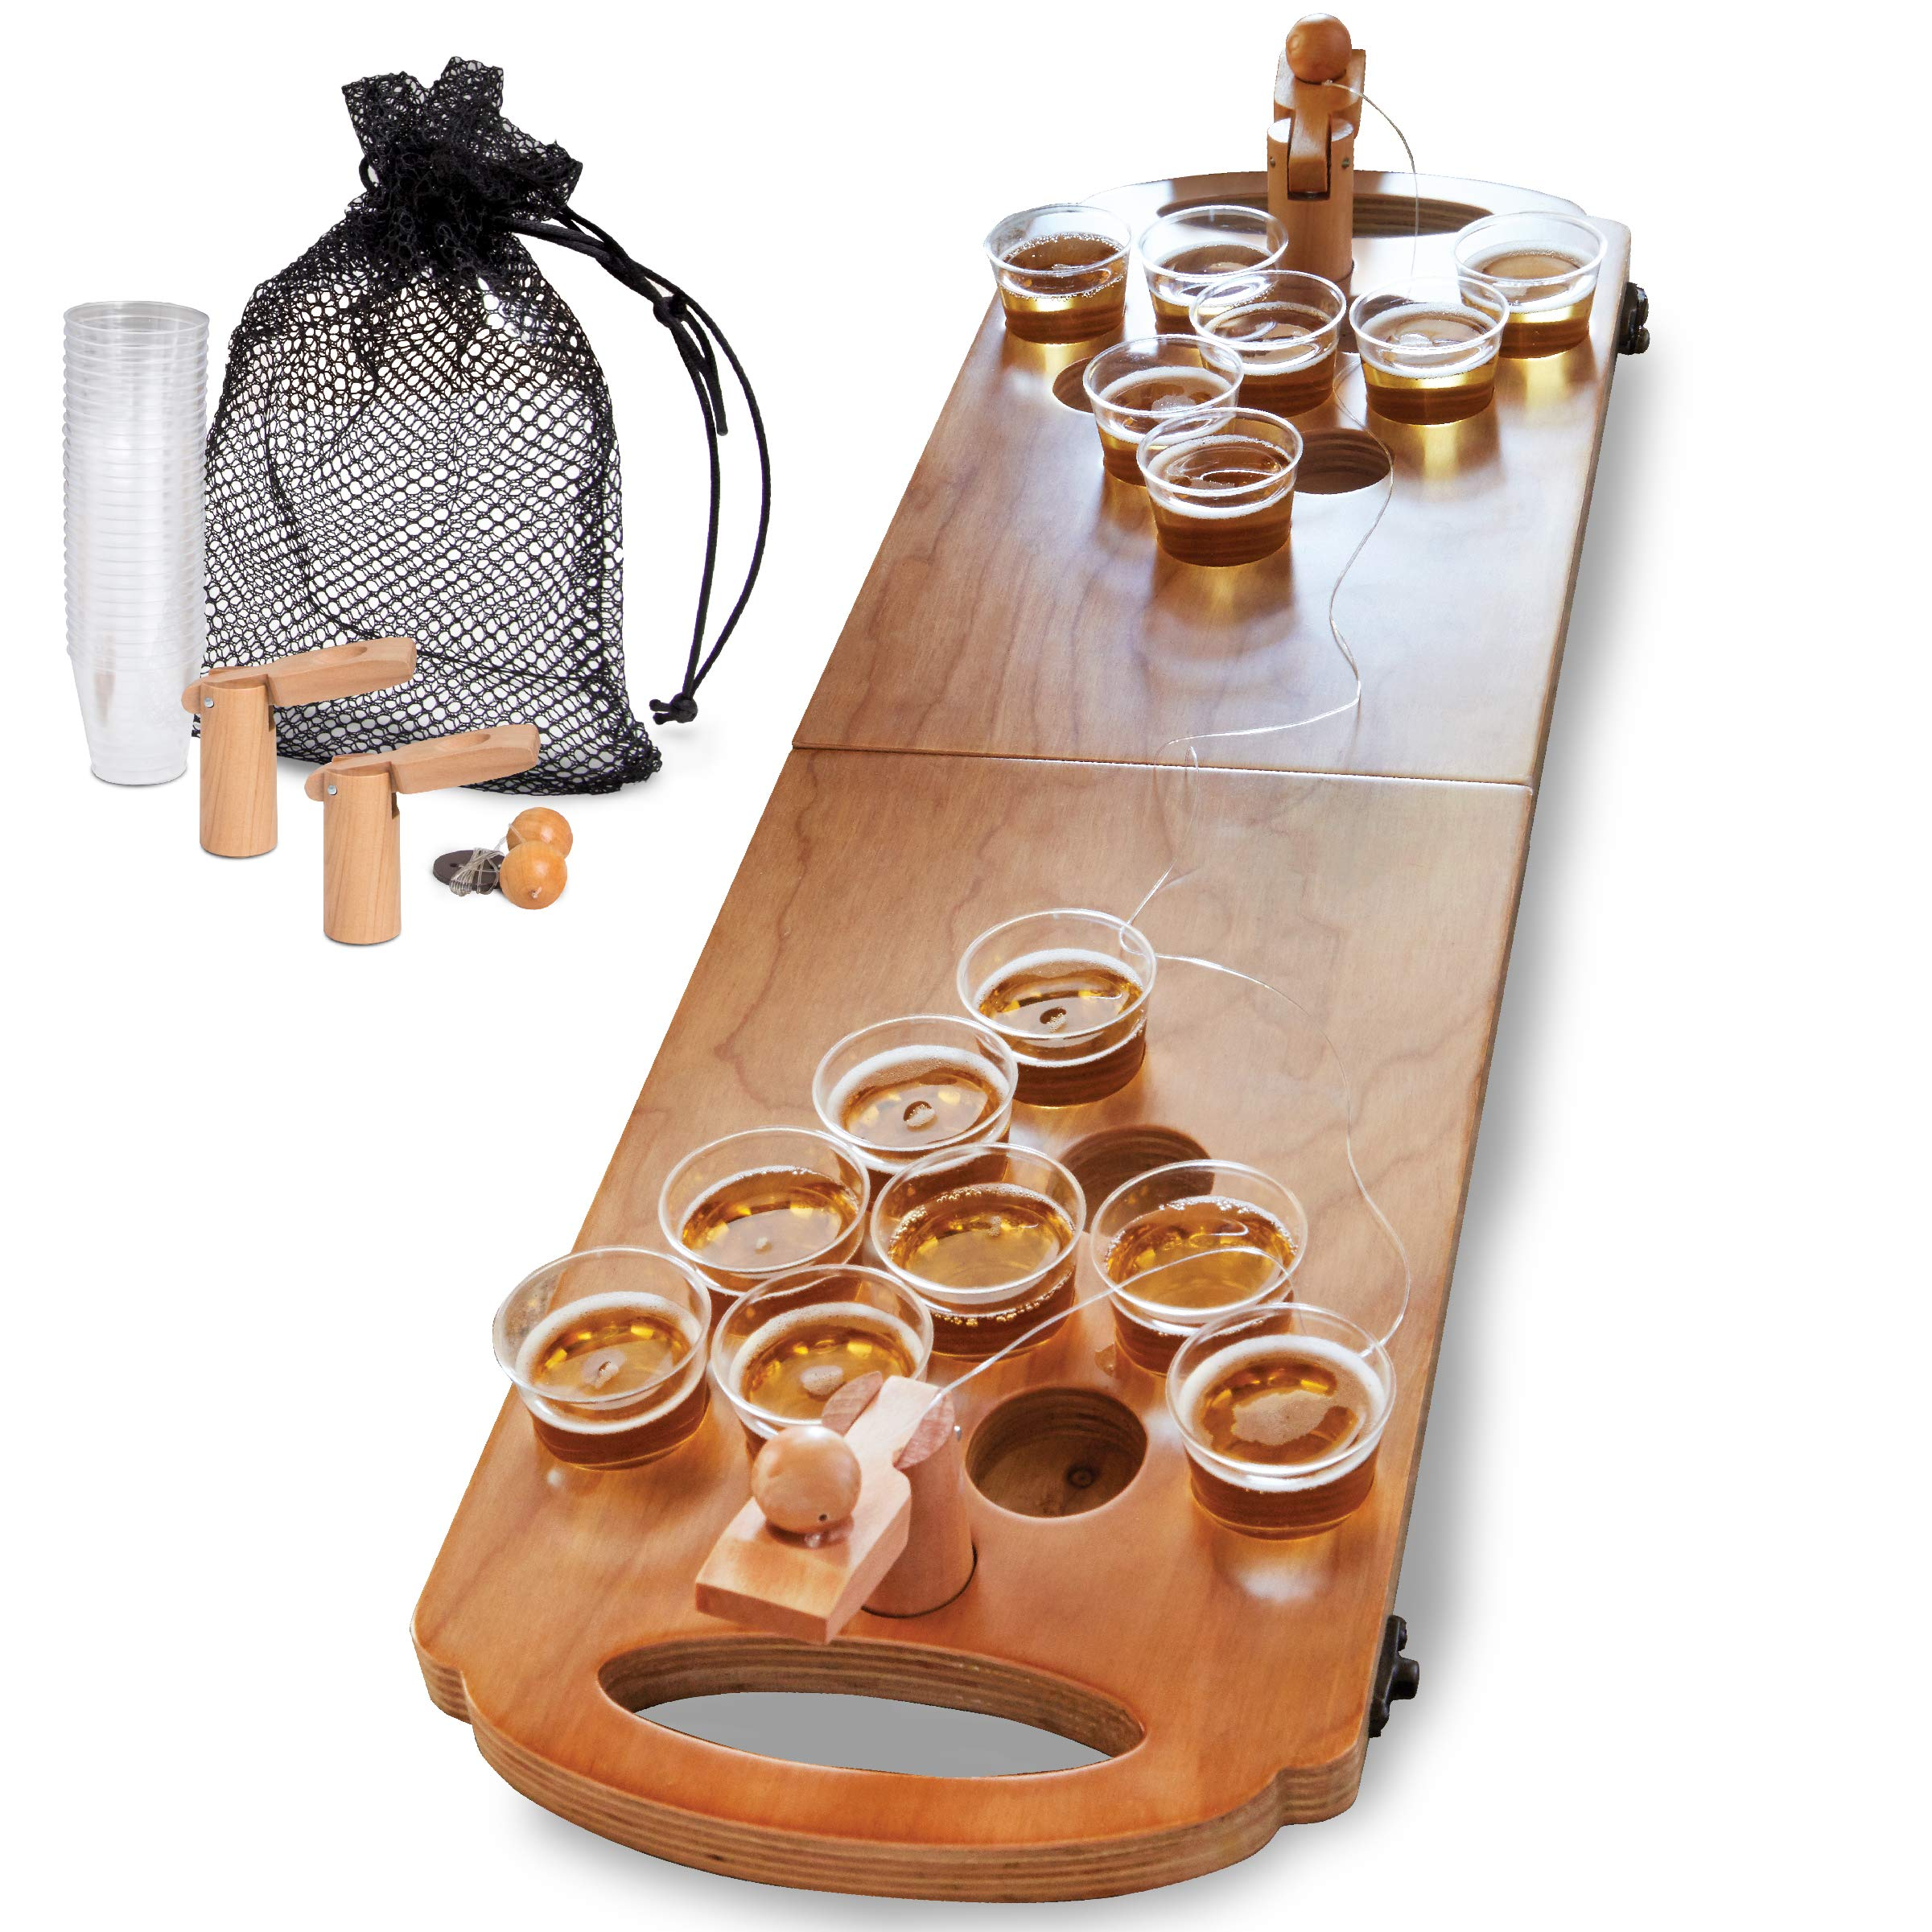 Sharper Image Mini Beer Pong Tabletop Table, 25 Cups, and Balls Set with Holes, Includes Carrying Case/Bag, Portable and Foldable for Indoor and Outdoor Party, Tailgating Games, Pool, College by Sharper Image (Image #1)